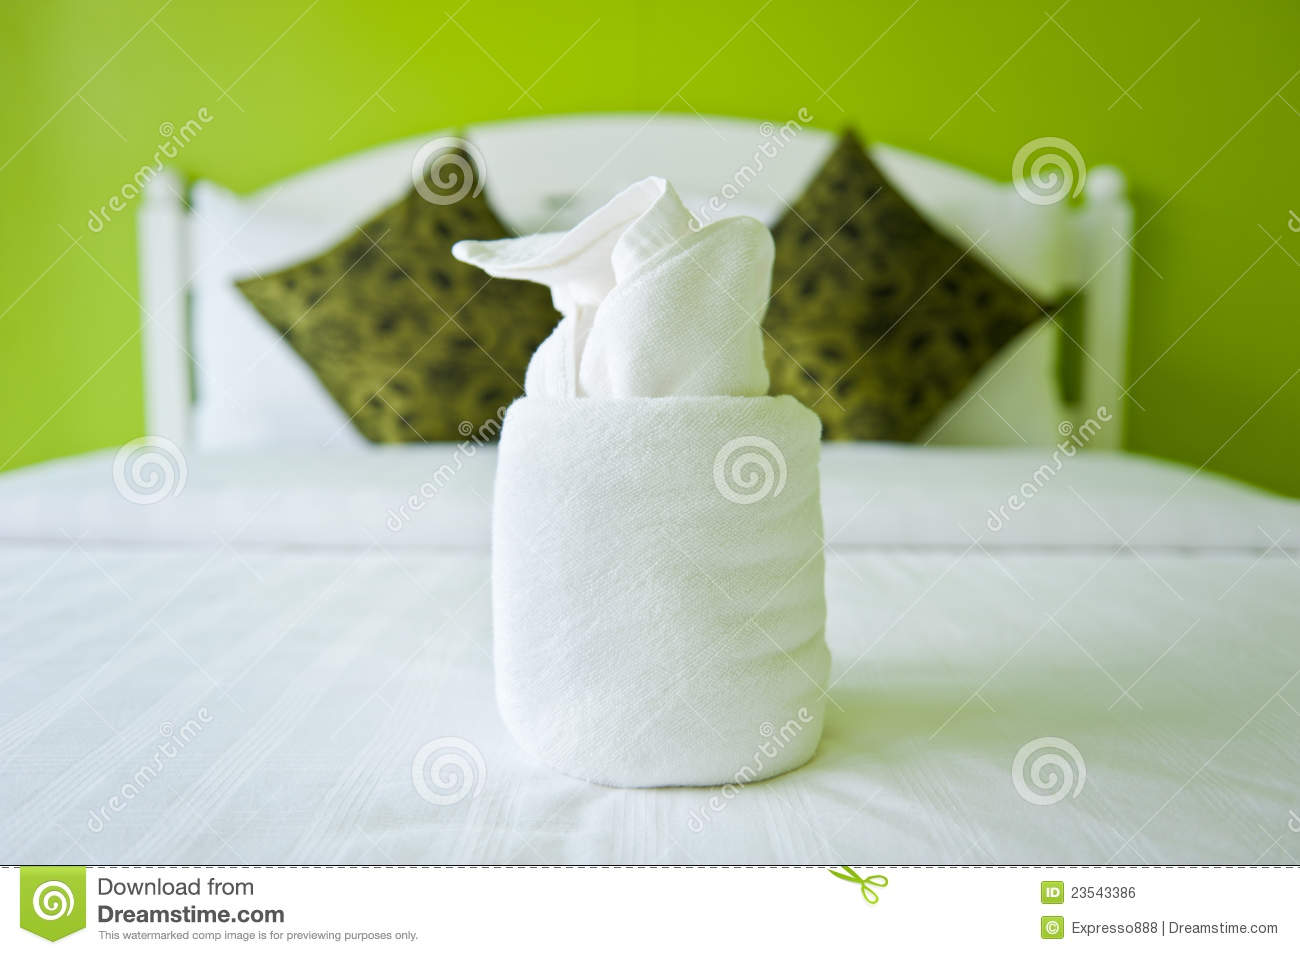 Towel in the green bedroom royalty free stock image for Designhotel maastricht comfort xl